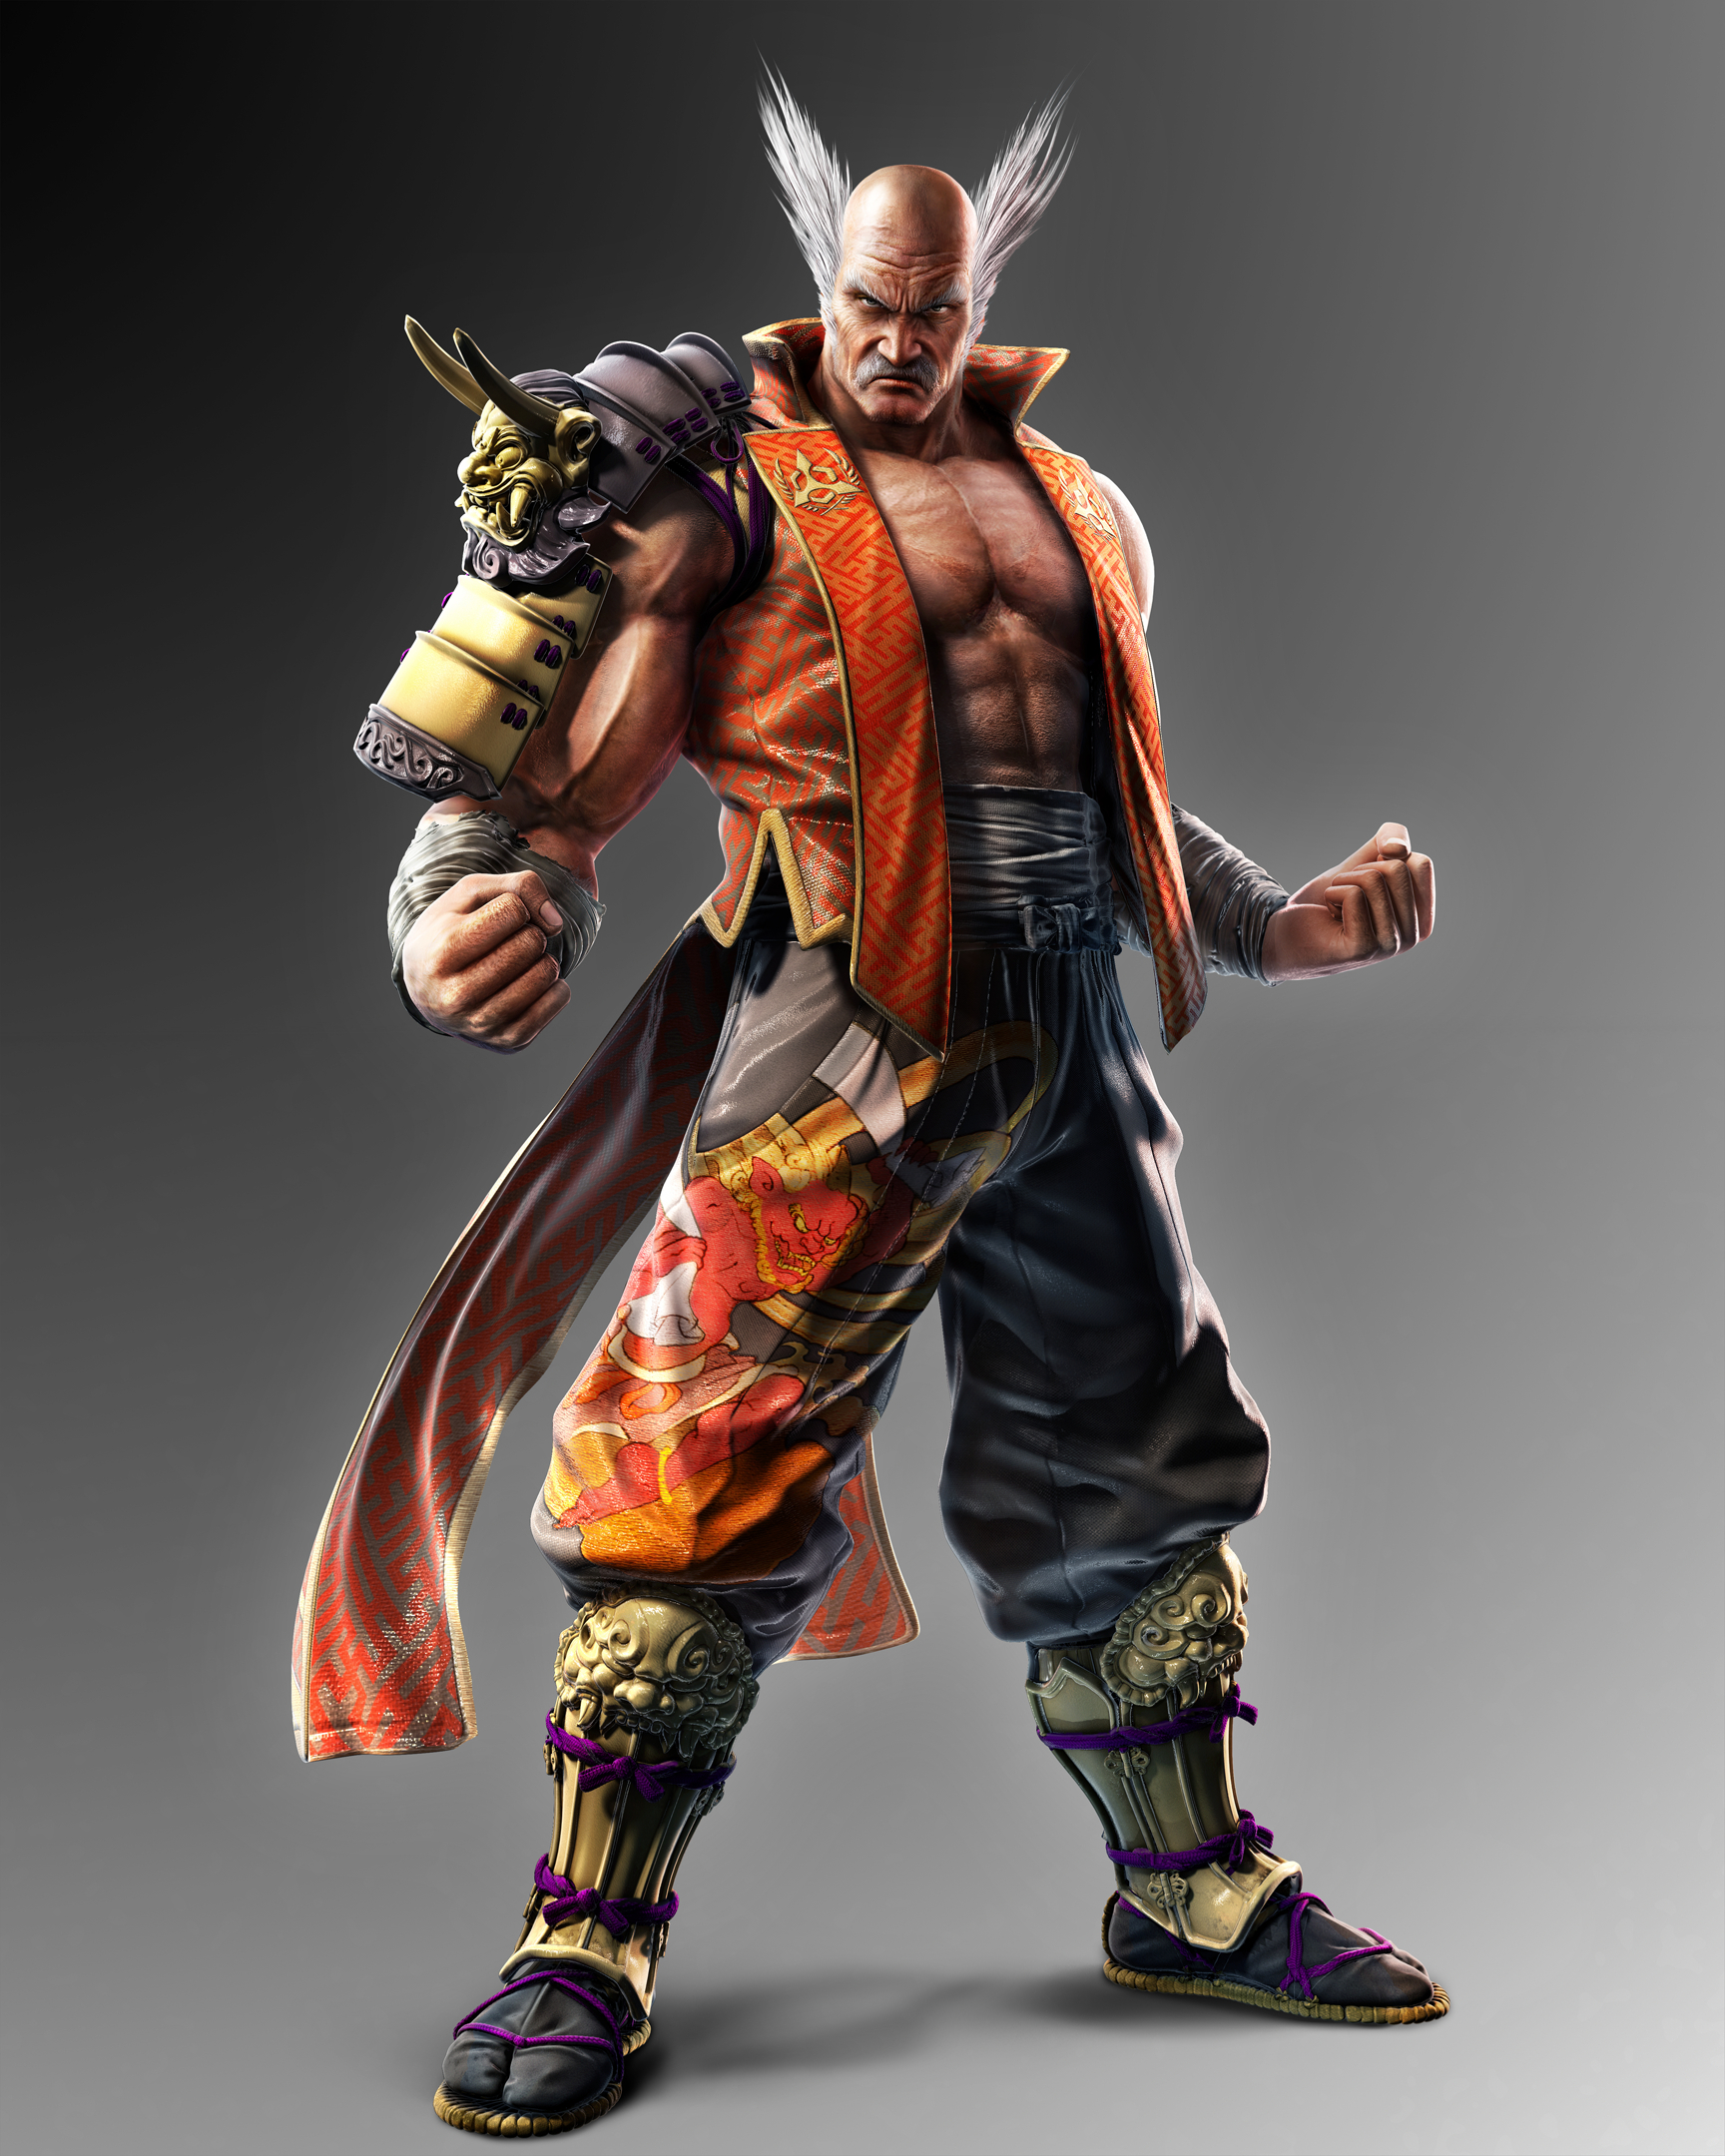 Heihachi Mishima Tekken Wiki Fandom Powered By Wikia